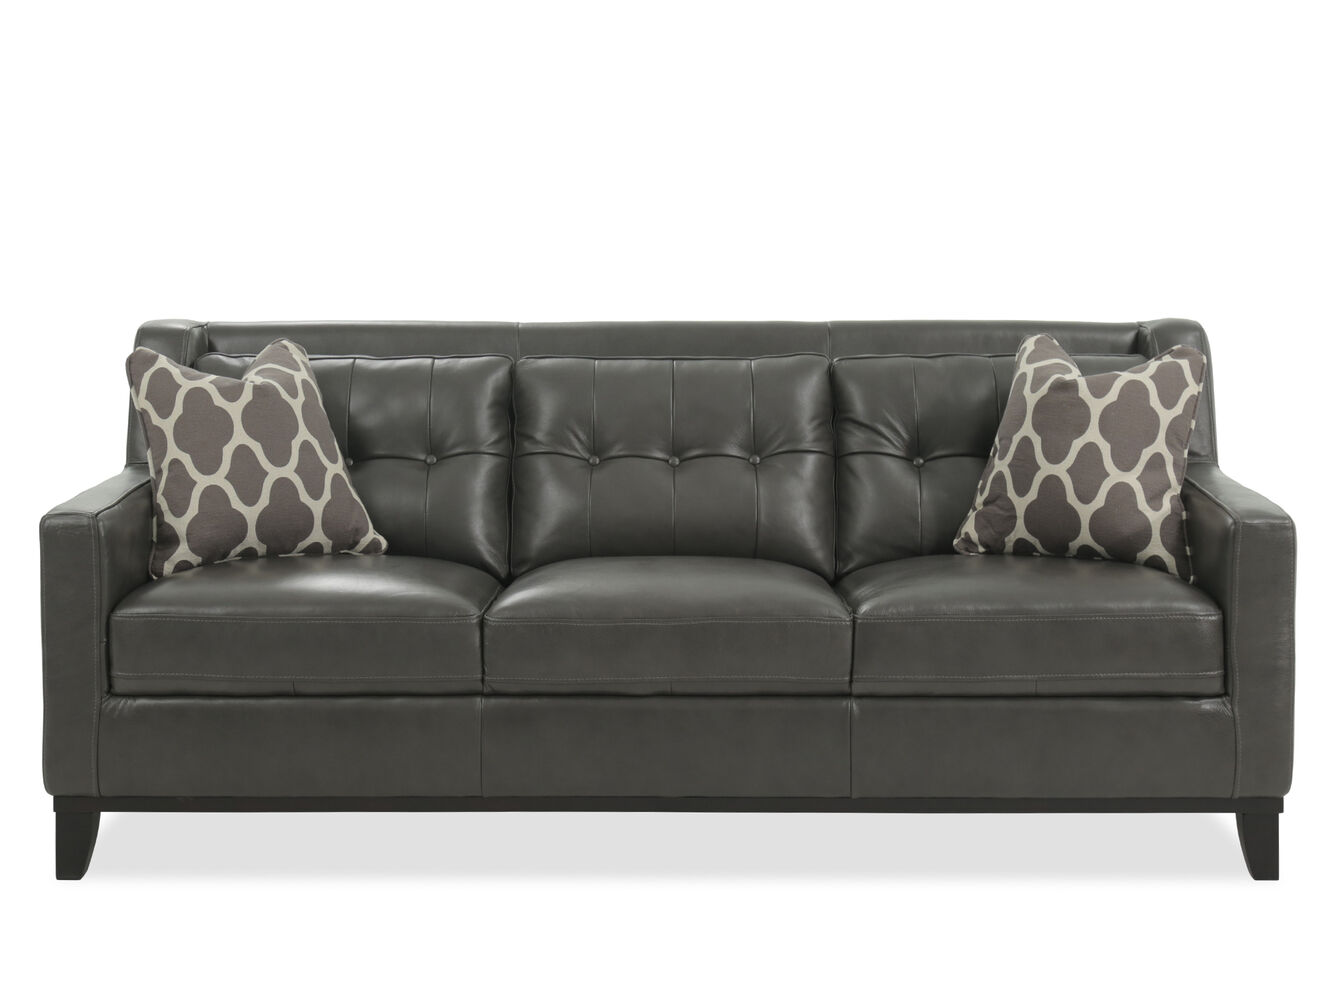 Mathis Brothers Leather Sofas Catosferanet